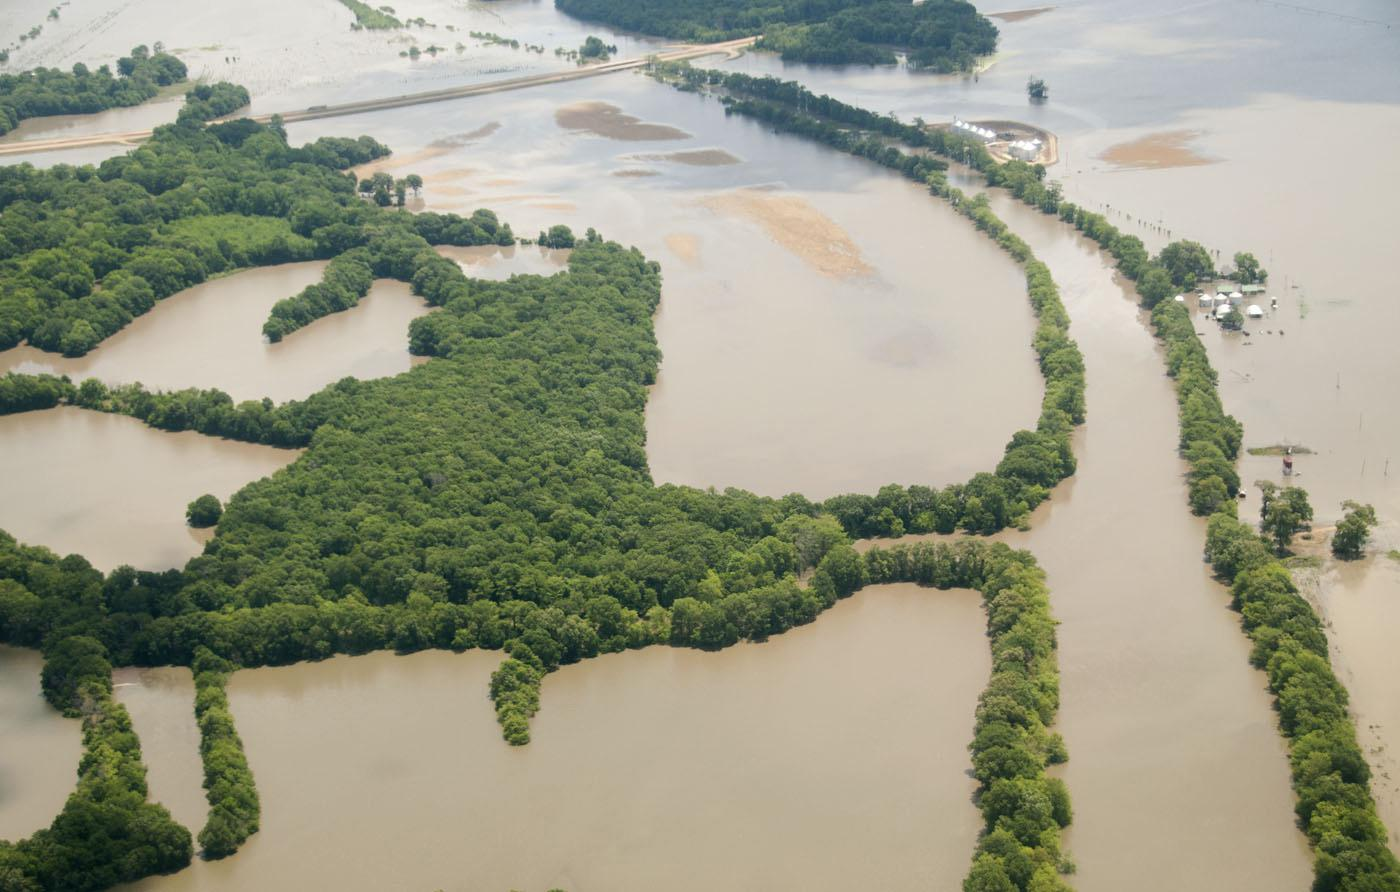 The overflowing Mississippi River and its tributaries are threatening the Delta's trees, but many can survive for weeks in flood waters as long as their crowns remain above water and their roots do not become too exposed. (Photo by Scott Corey)